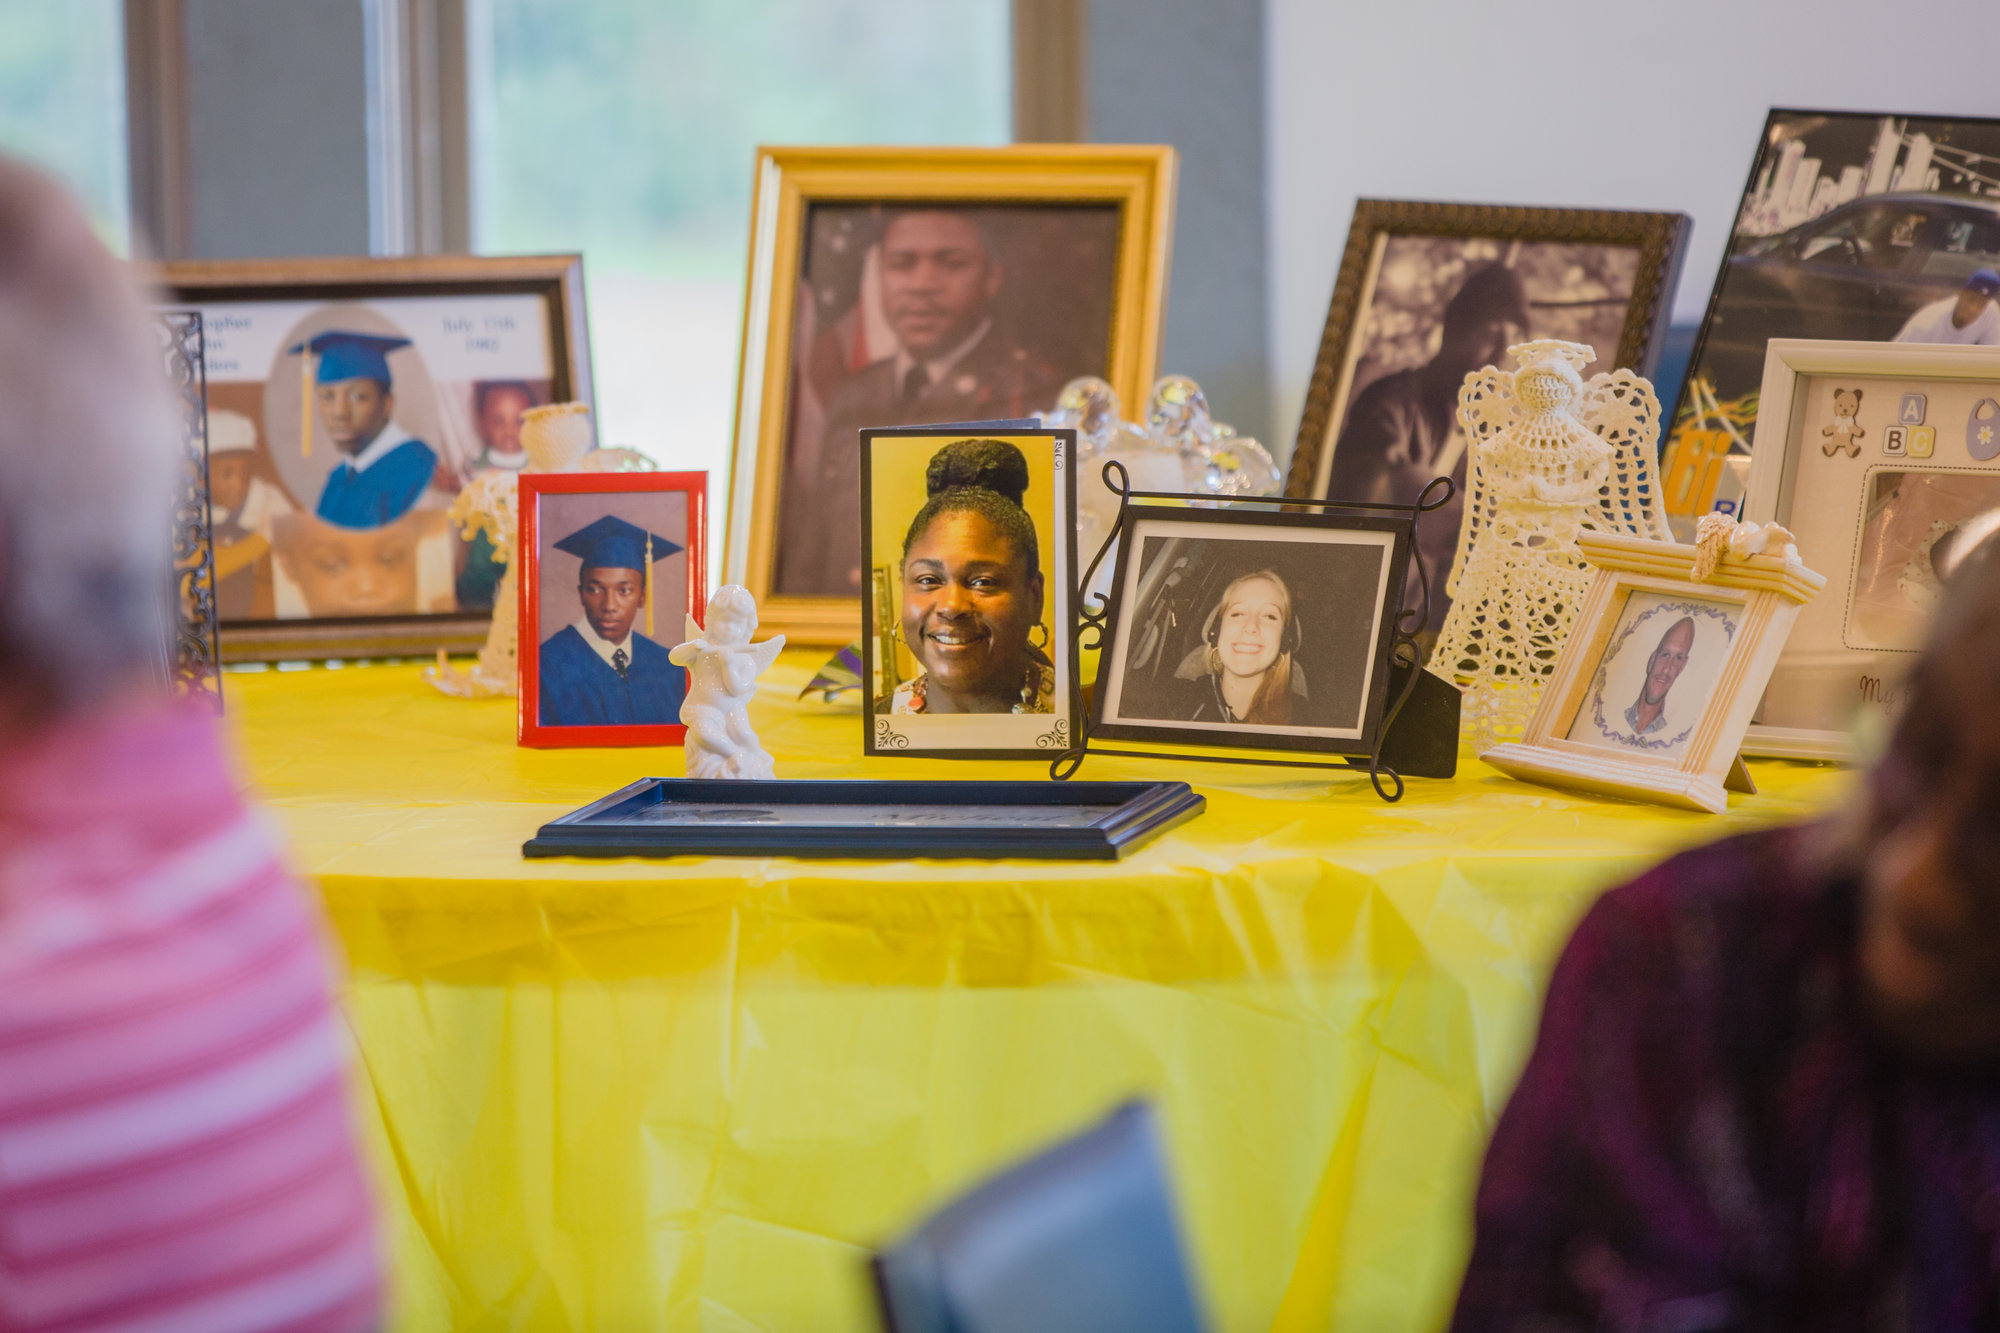 Photos of children that members of the Mothers of Angels have lost are displayed during the group's annual luncheon.